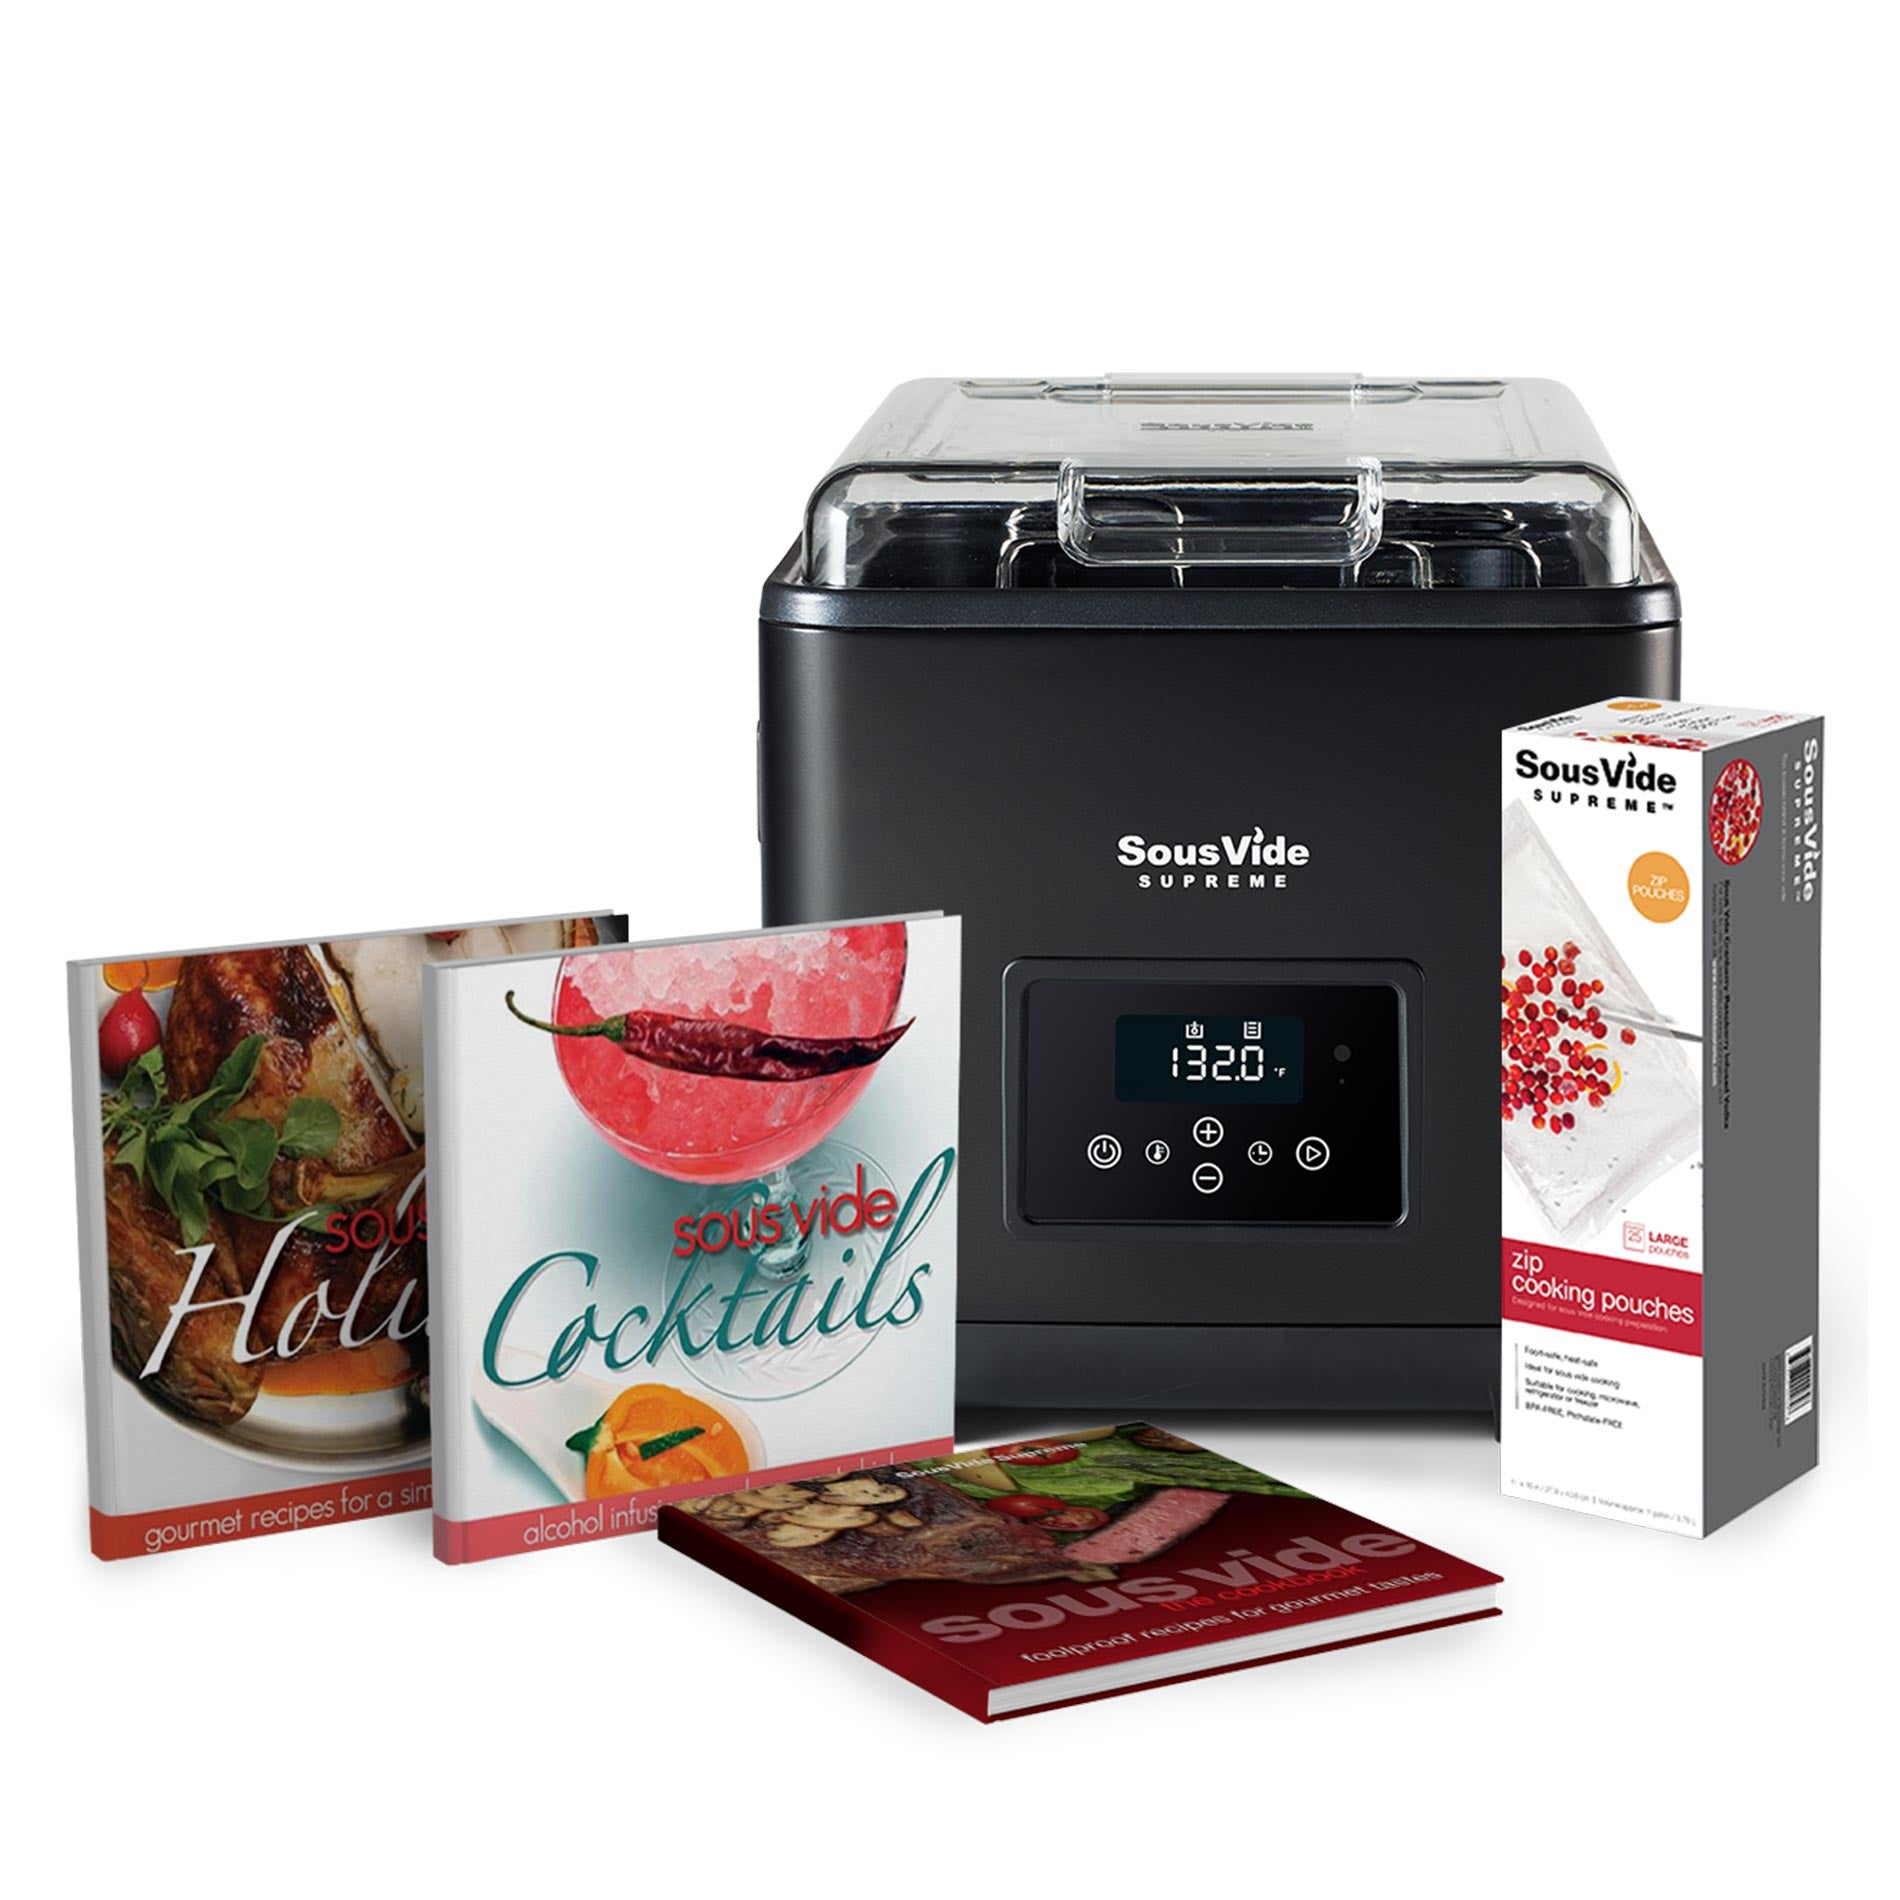 SousVide Supreme 9 Liter Touch Holiday Promo Pack